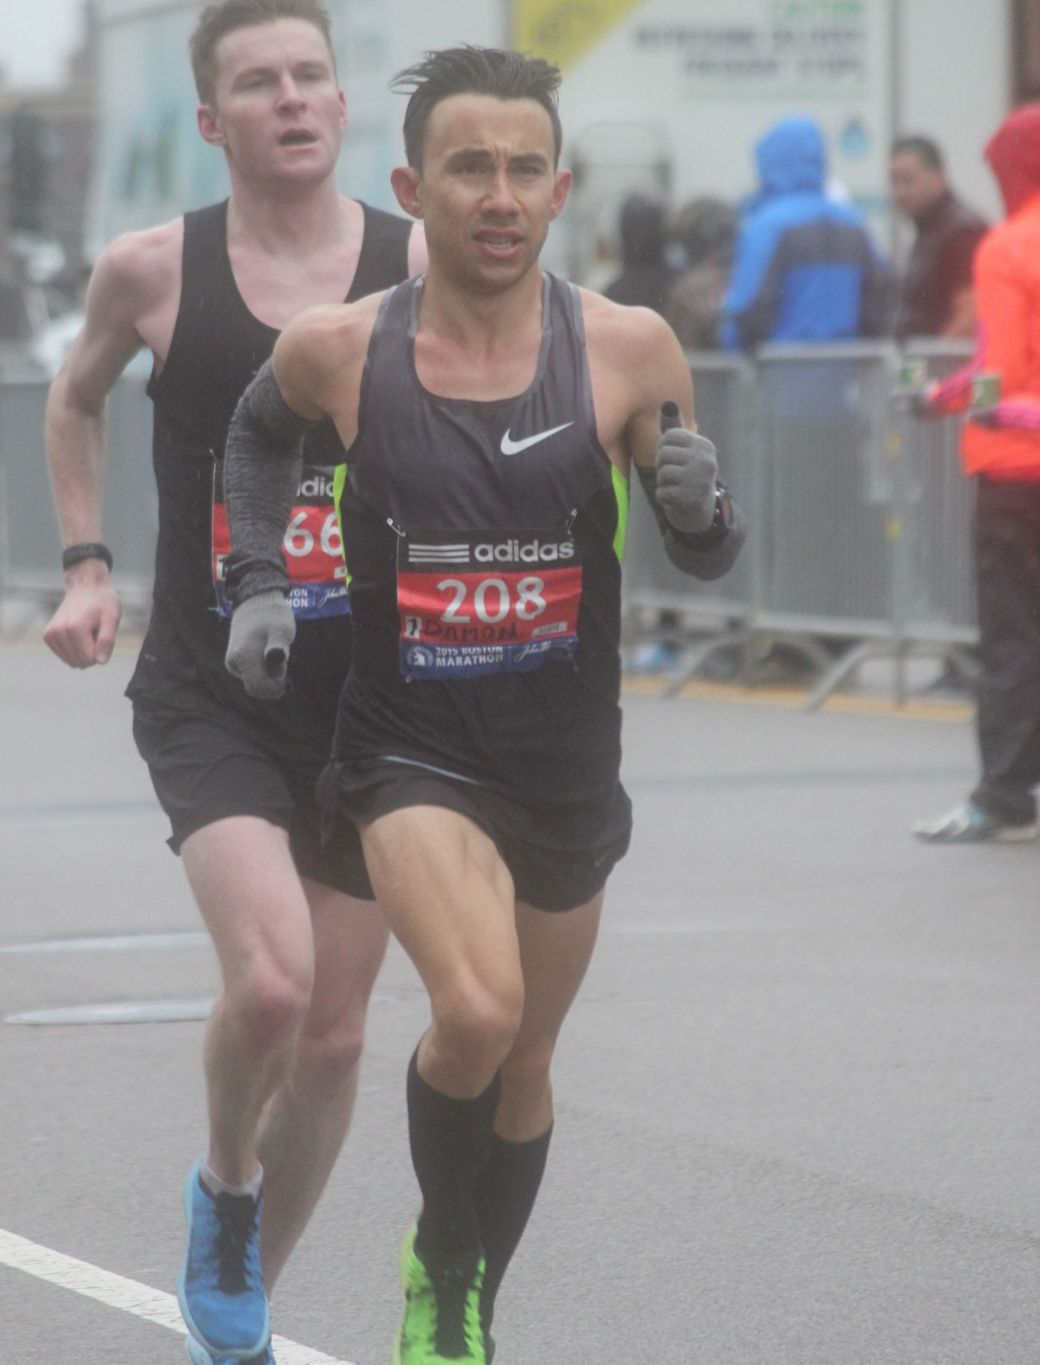 boston marathon april 20 2015 racer number 208